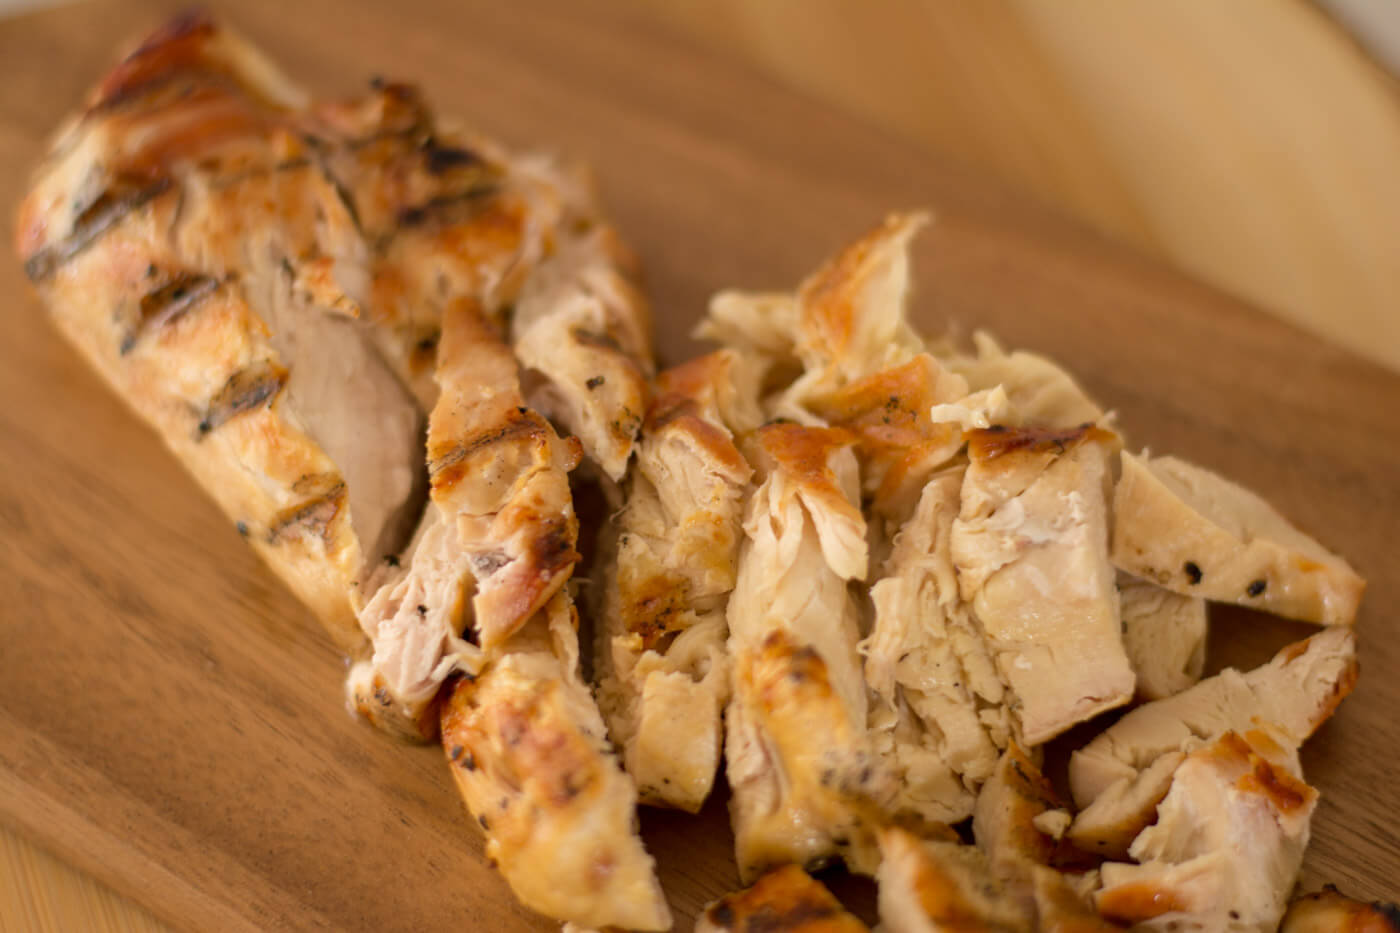 Grilled Chicken for Meal Prep Ready to Serve